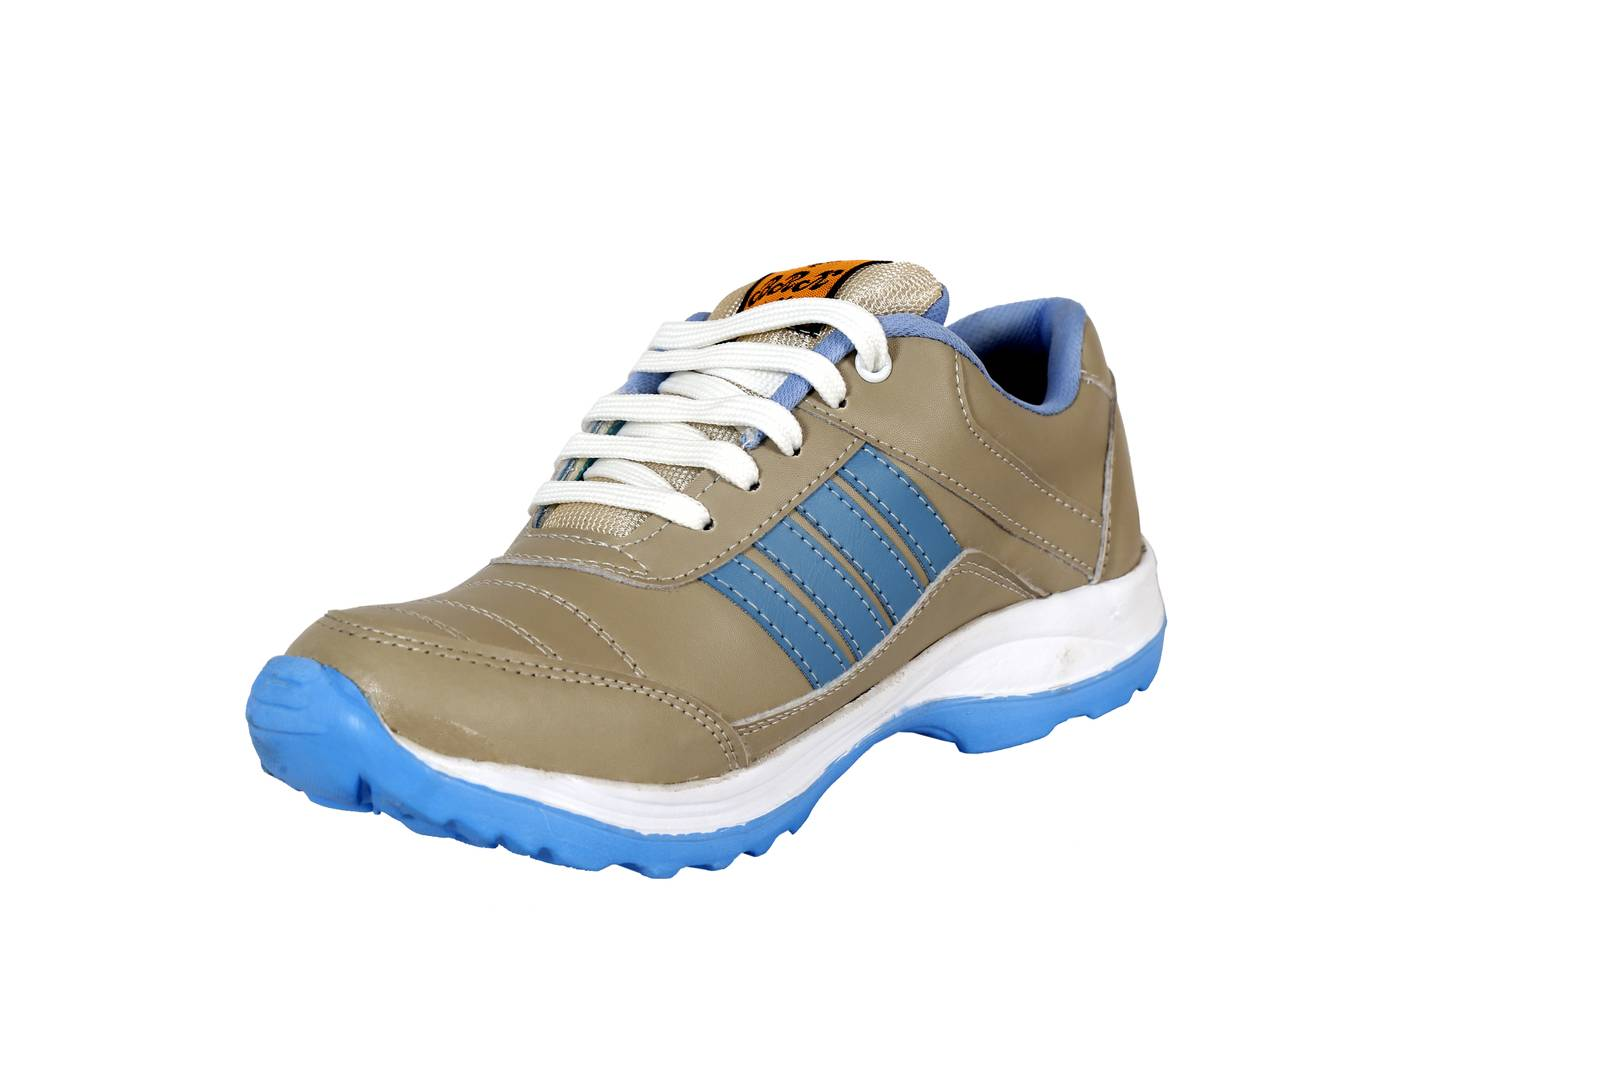 Men's Brown Stylish Sports Running Shoe